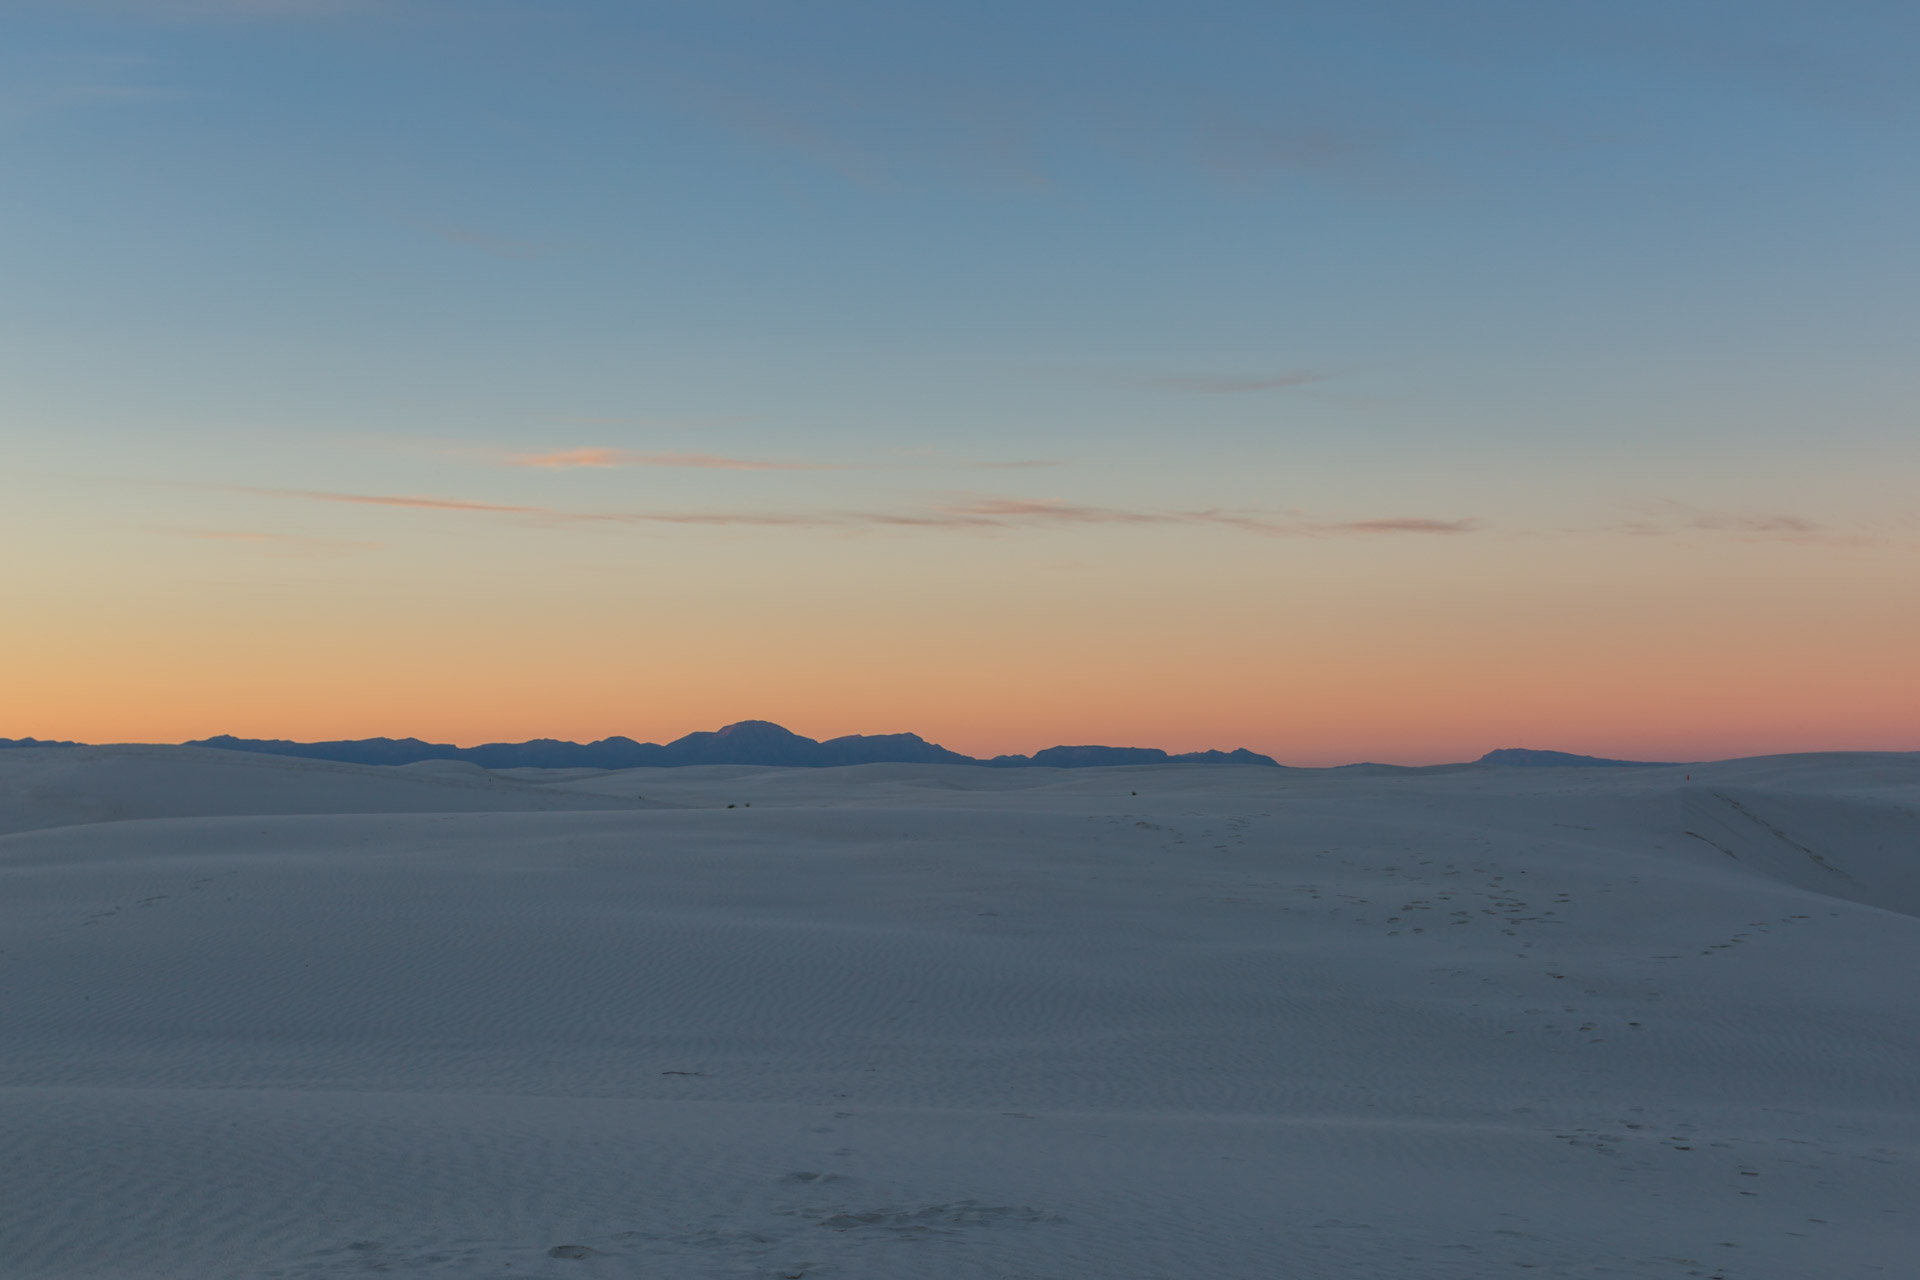 In A Sunset At White Sands (view 2)